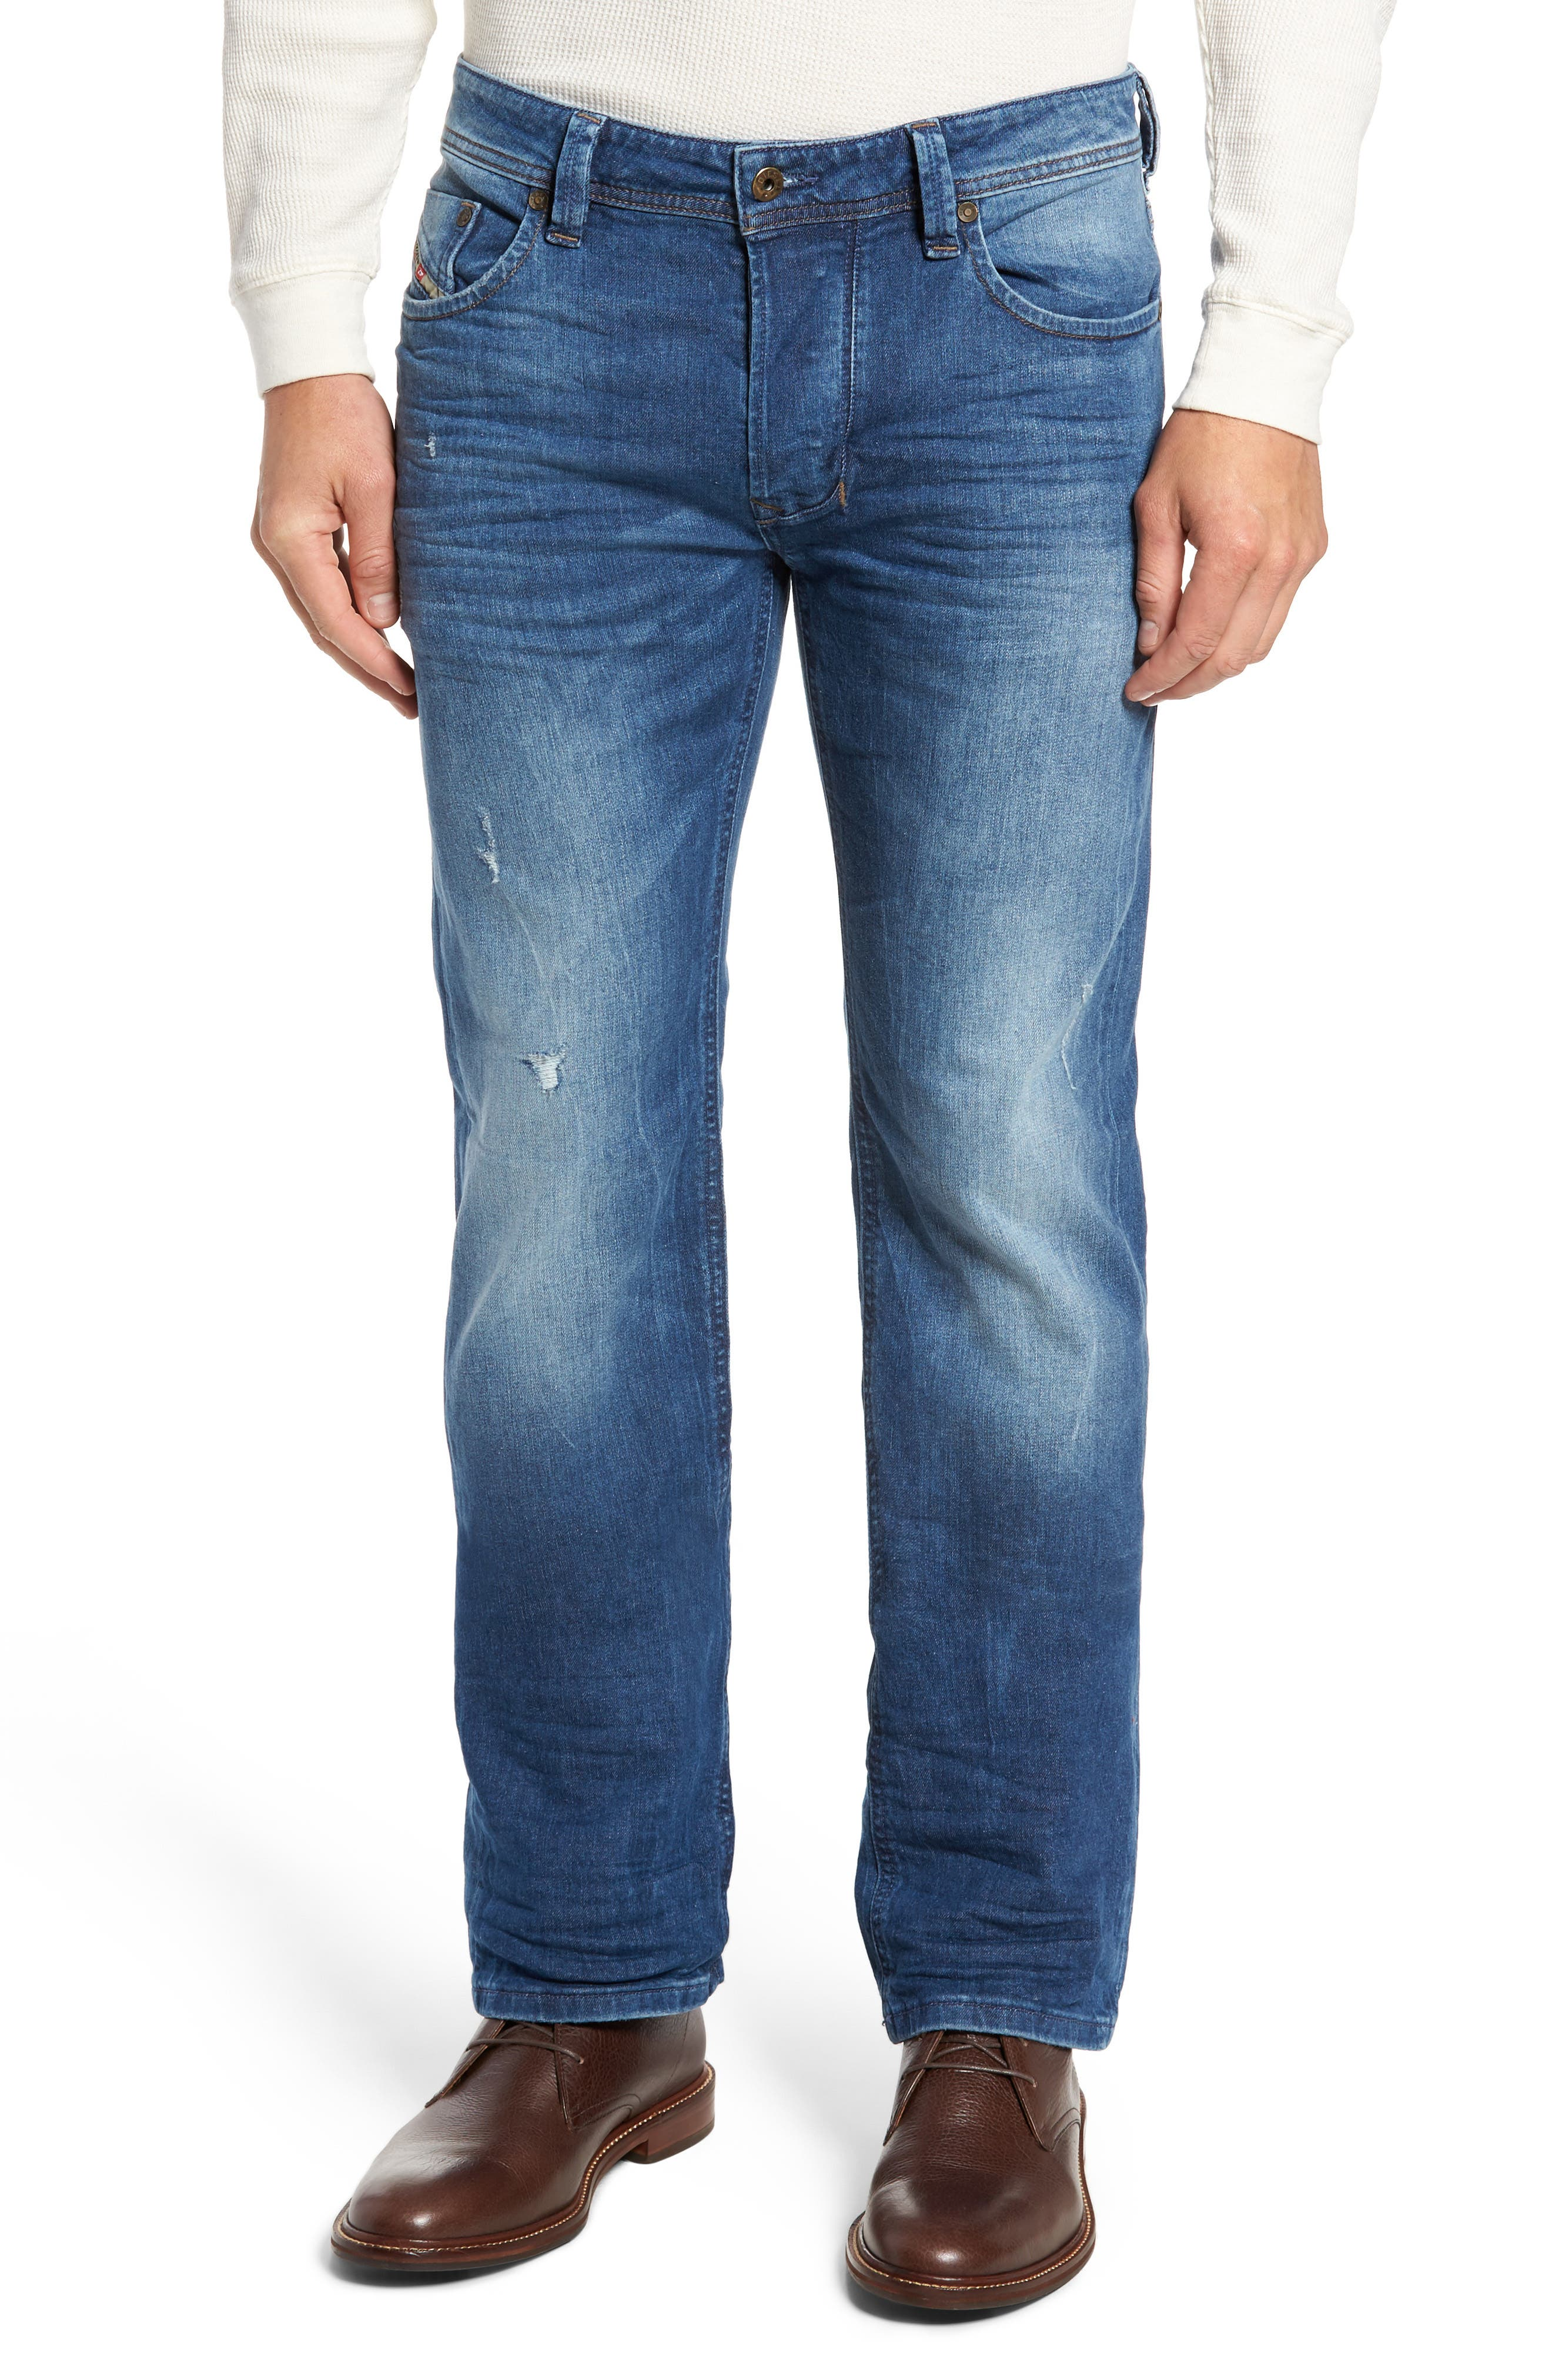 Larkee Relaxed Fit Jeans,                             Main thumbnail 1, color,                             C84ky